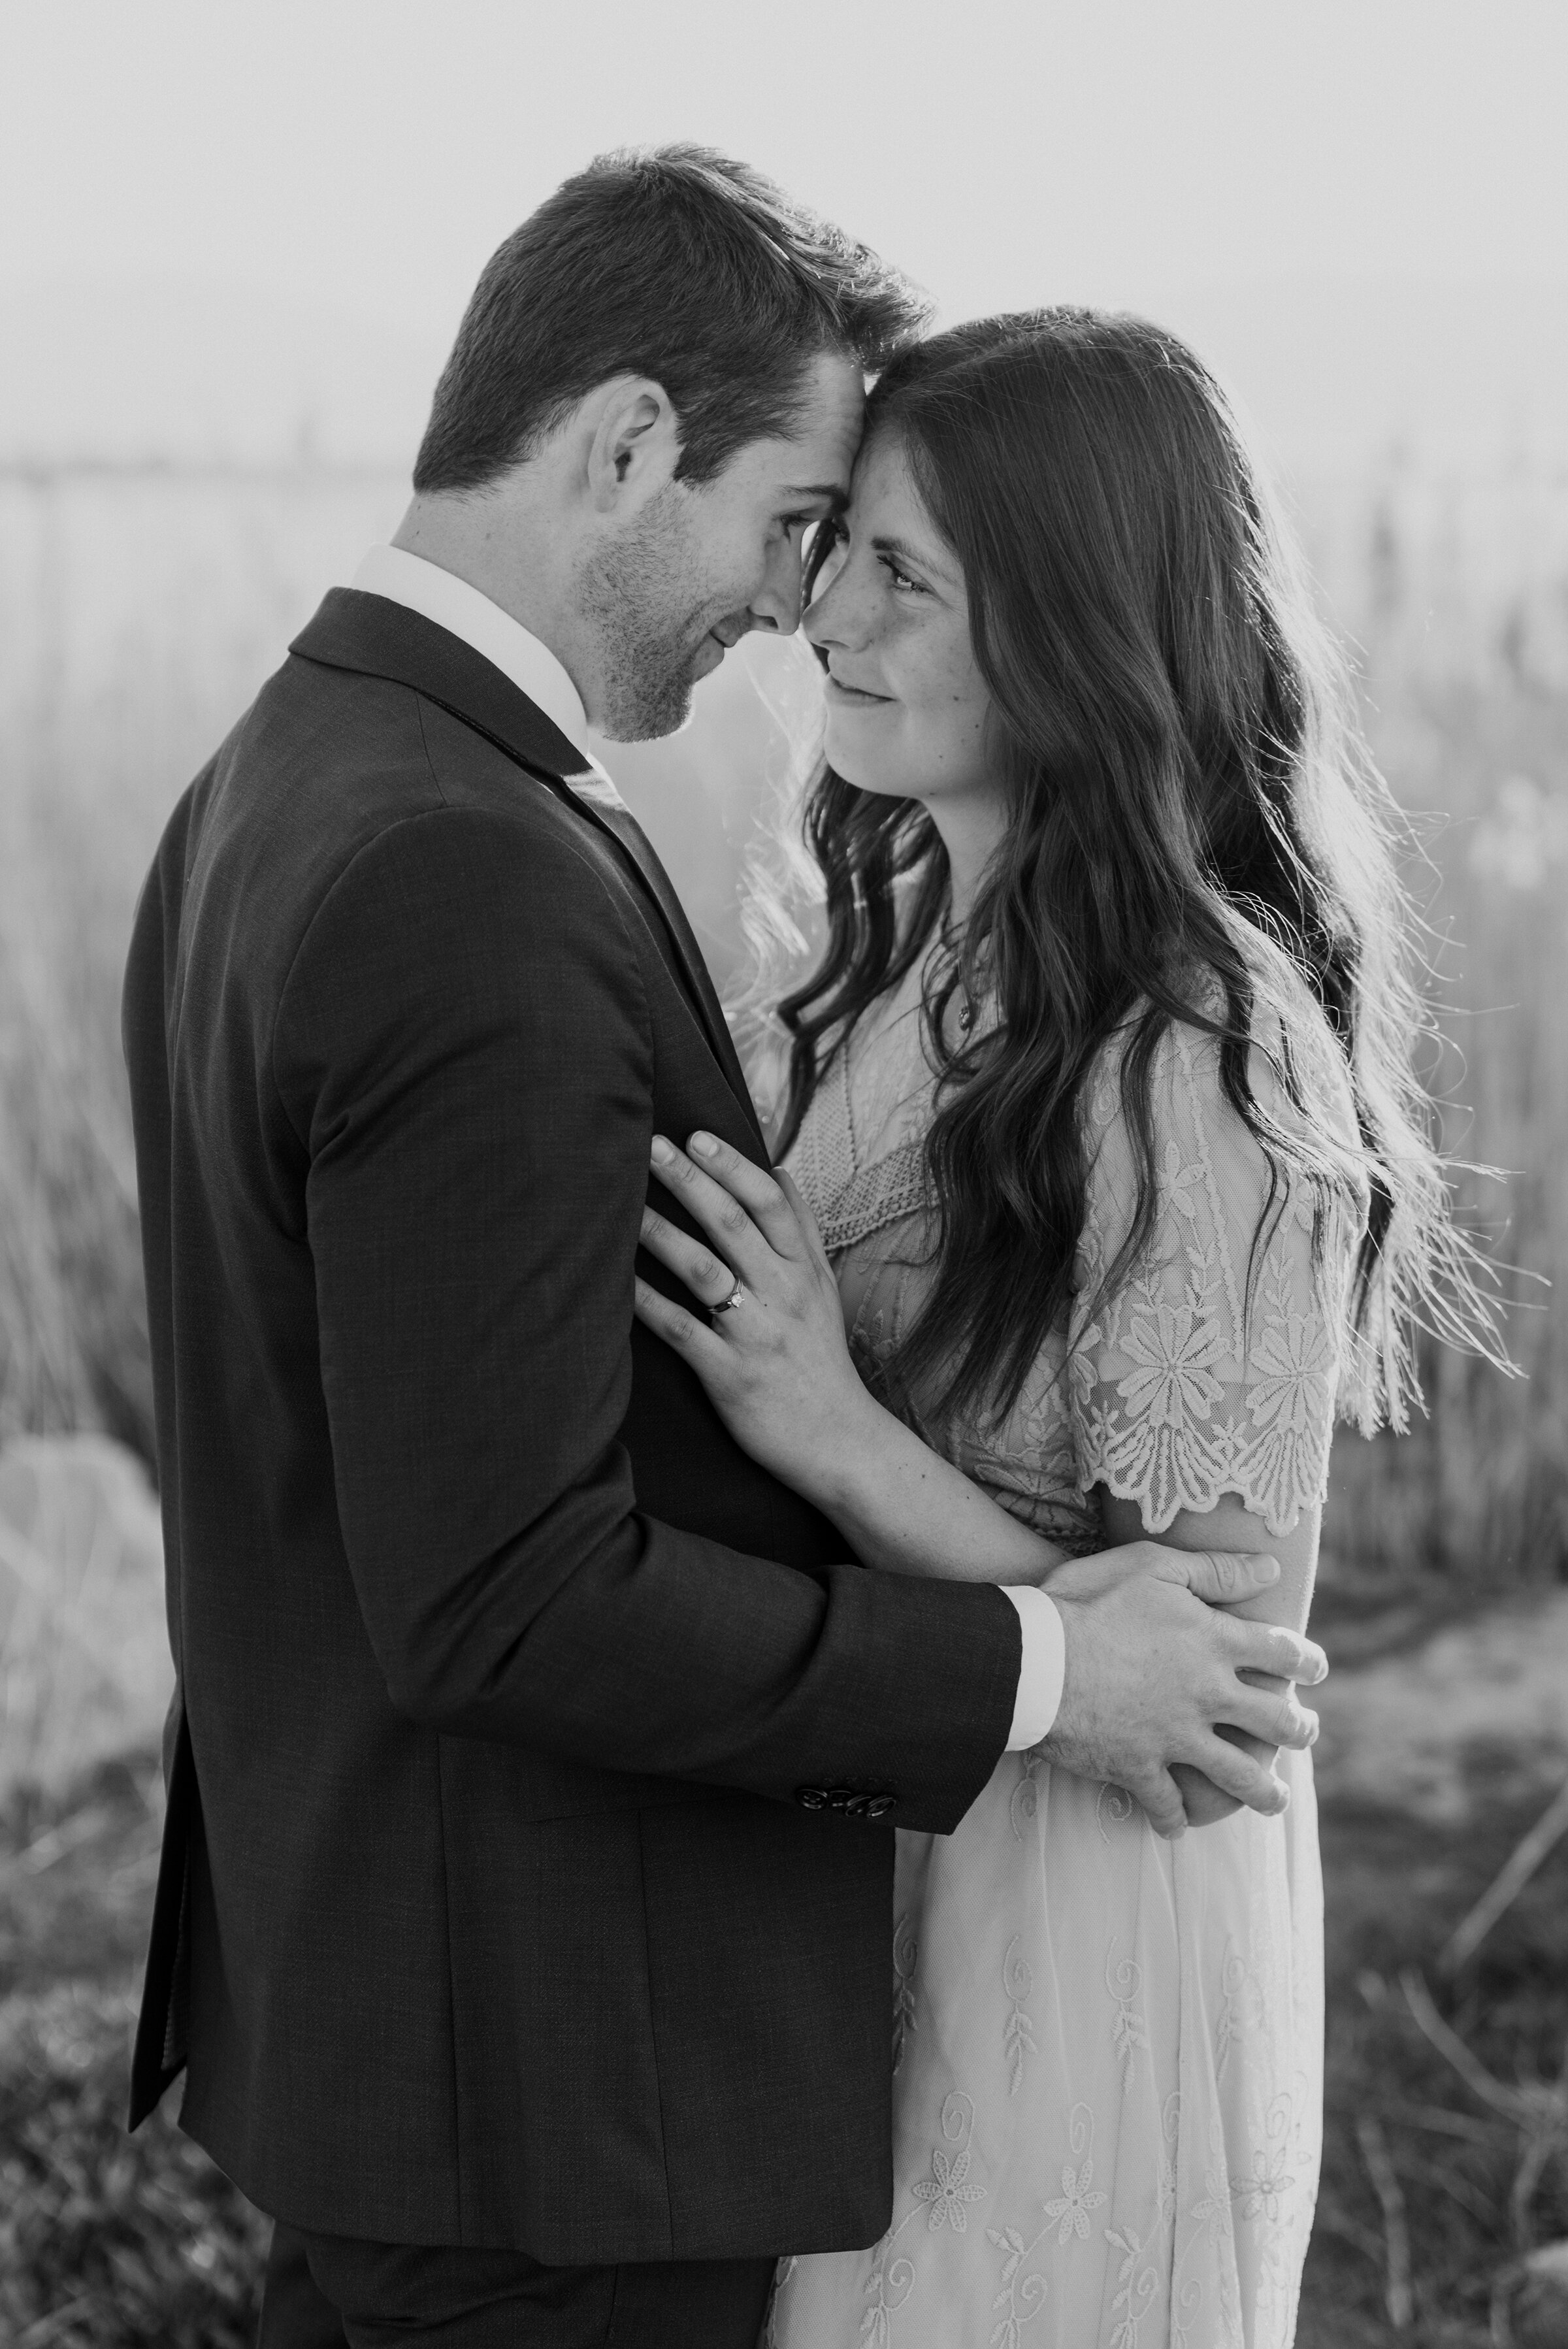 Happy couple blissfully looks at one another in a black and white photo during their engagement photoshoot. black and white photos romantic engagement photography swoonworthy photos couple pose ideas pinterest-worthy photos utah engagement photos blissful photography #coupleposes #engagementinspiration #unforgettable #foreverstartsnow #ldsweddings #blackandwhite #blackandwhitephotos